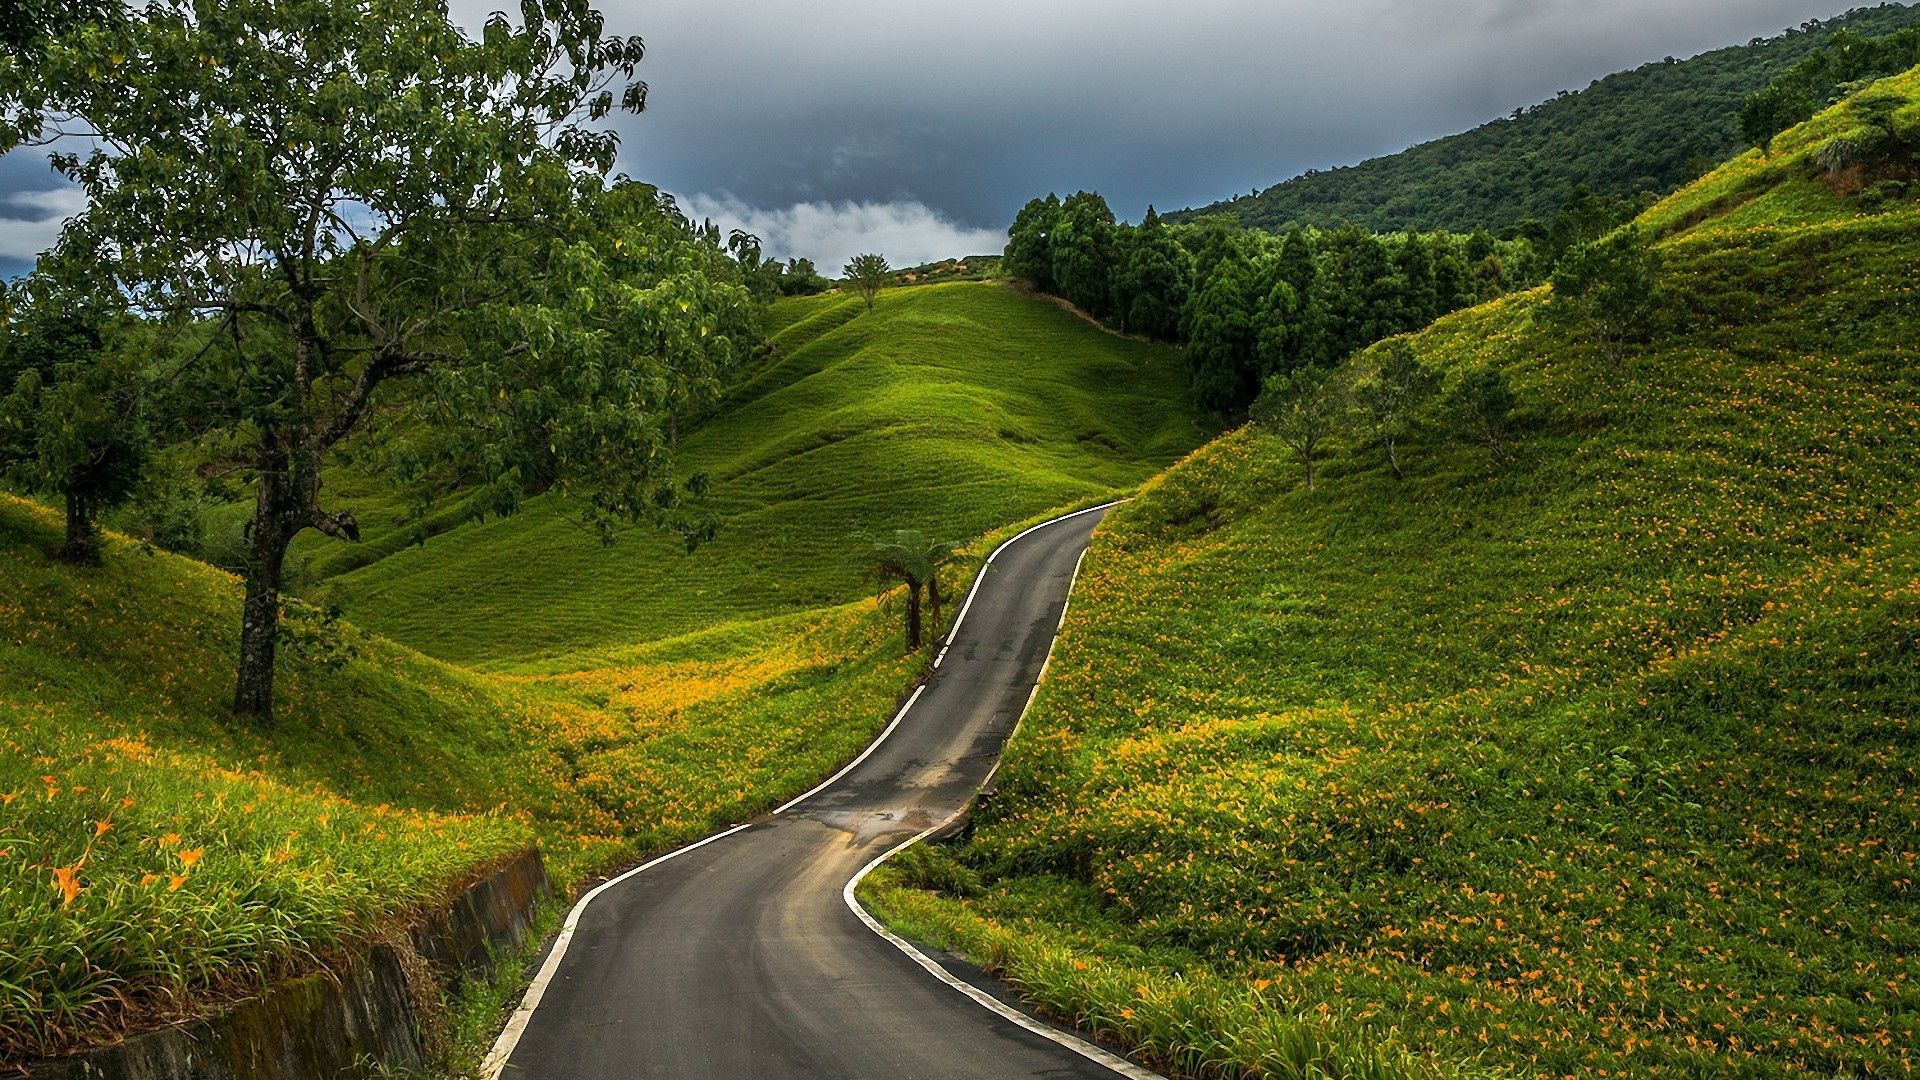 Road Through The Green Hills Nature Hd Wallpaper 1920x1080 3813 FOLKBRO